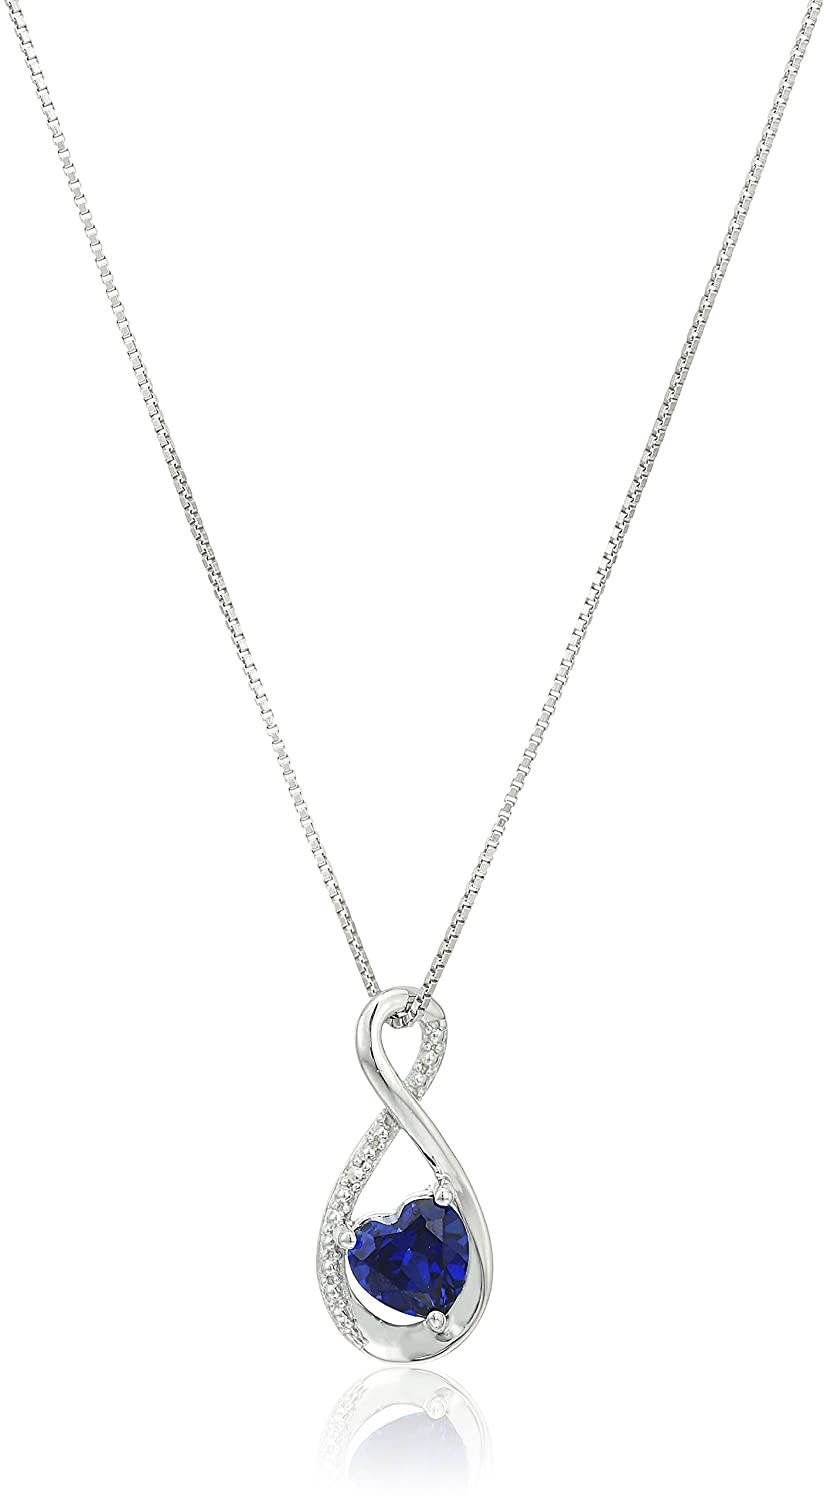 18 Sterling Silver Heart Lab-created Sapphire Pendant with Diamond Pendant Necklace